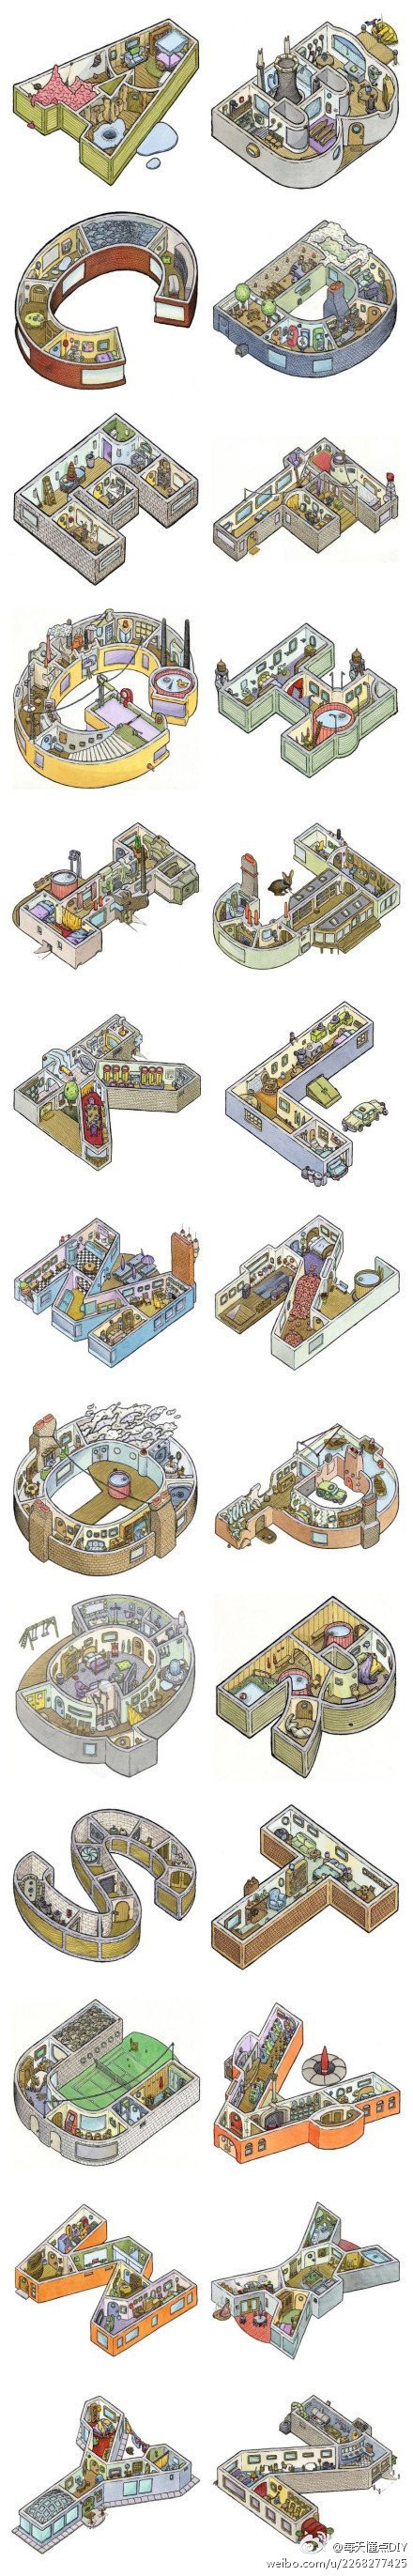 A fanciful 3D alphabet of tiny homes.